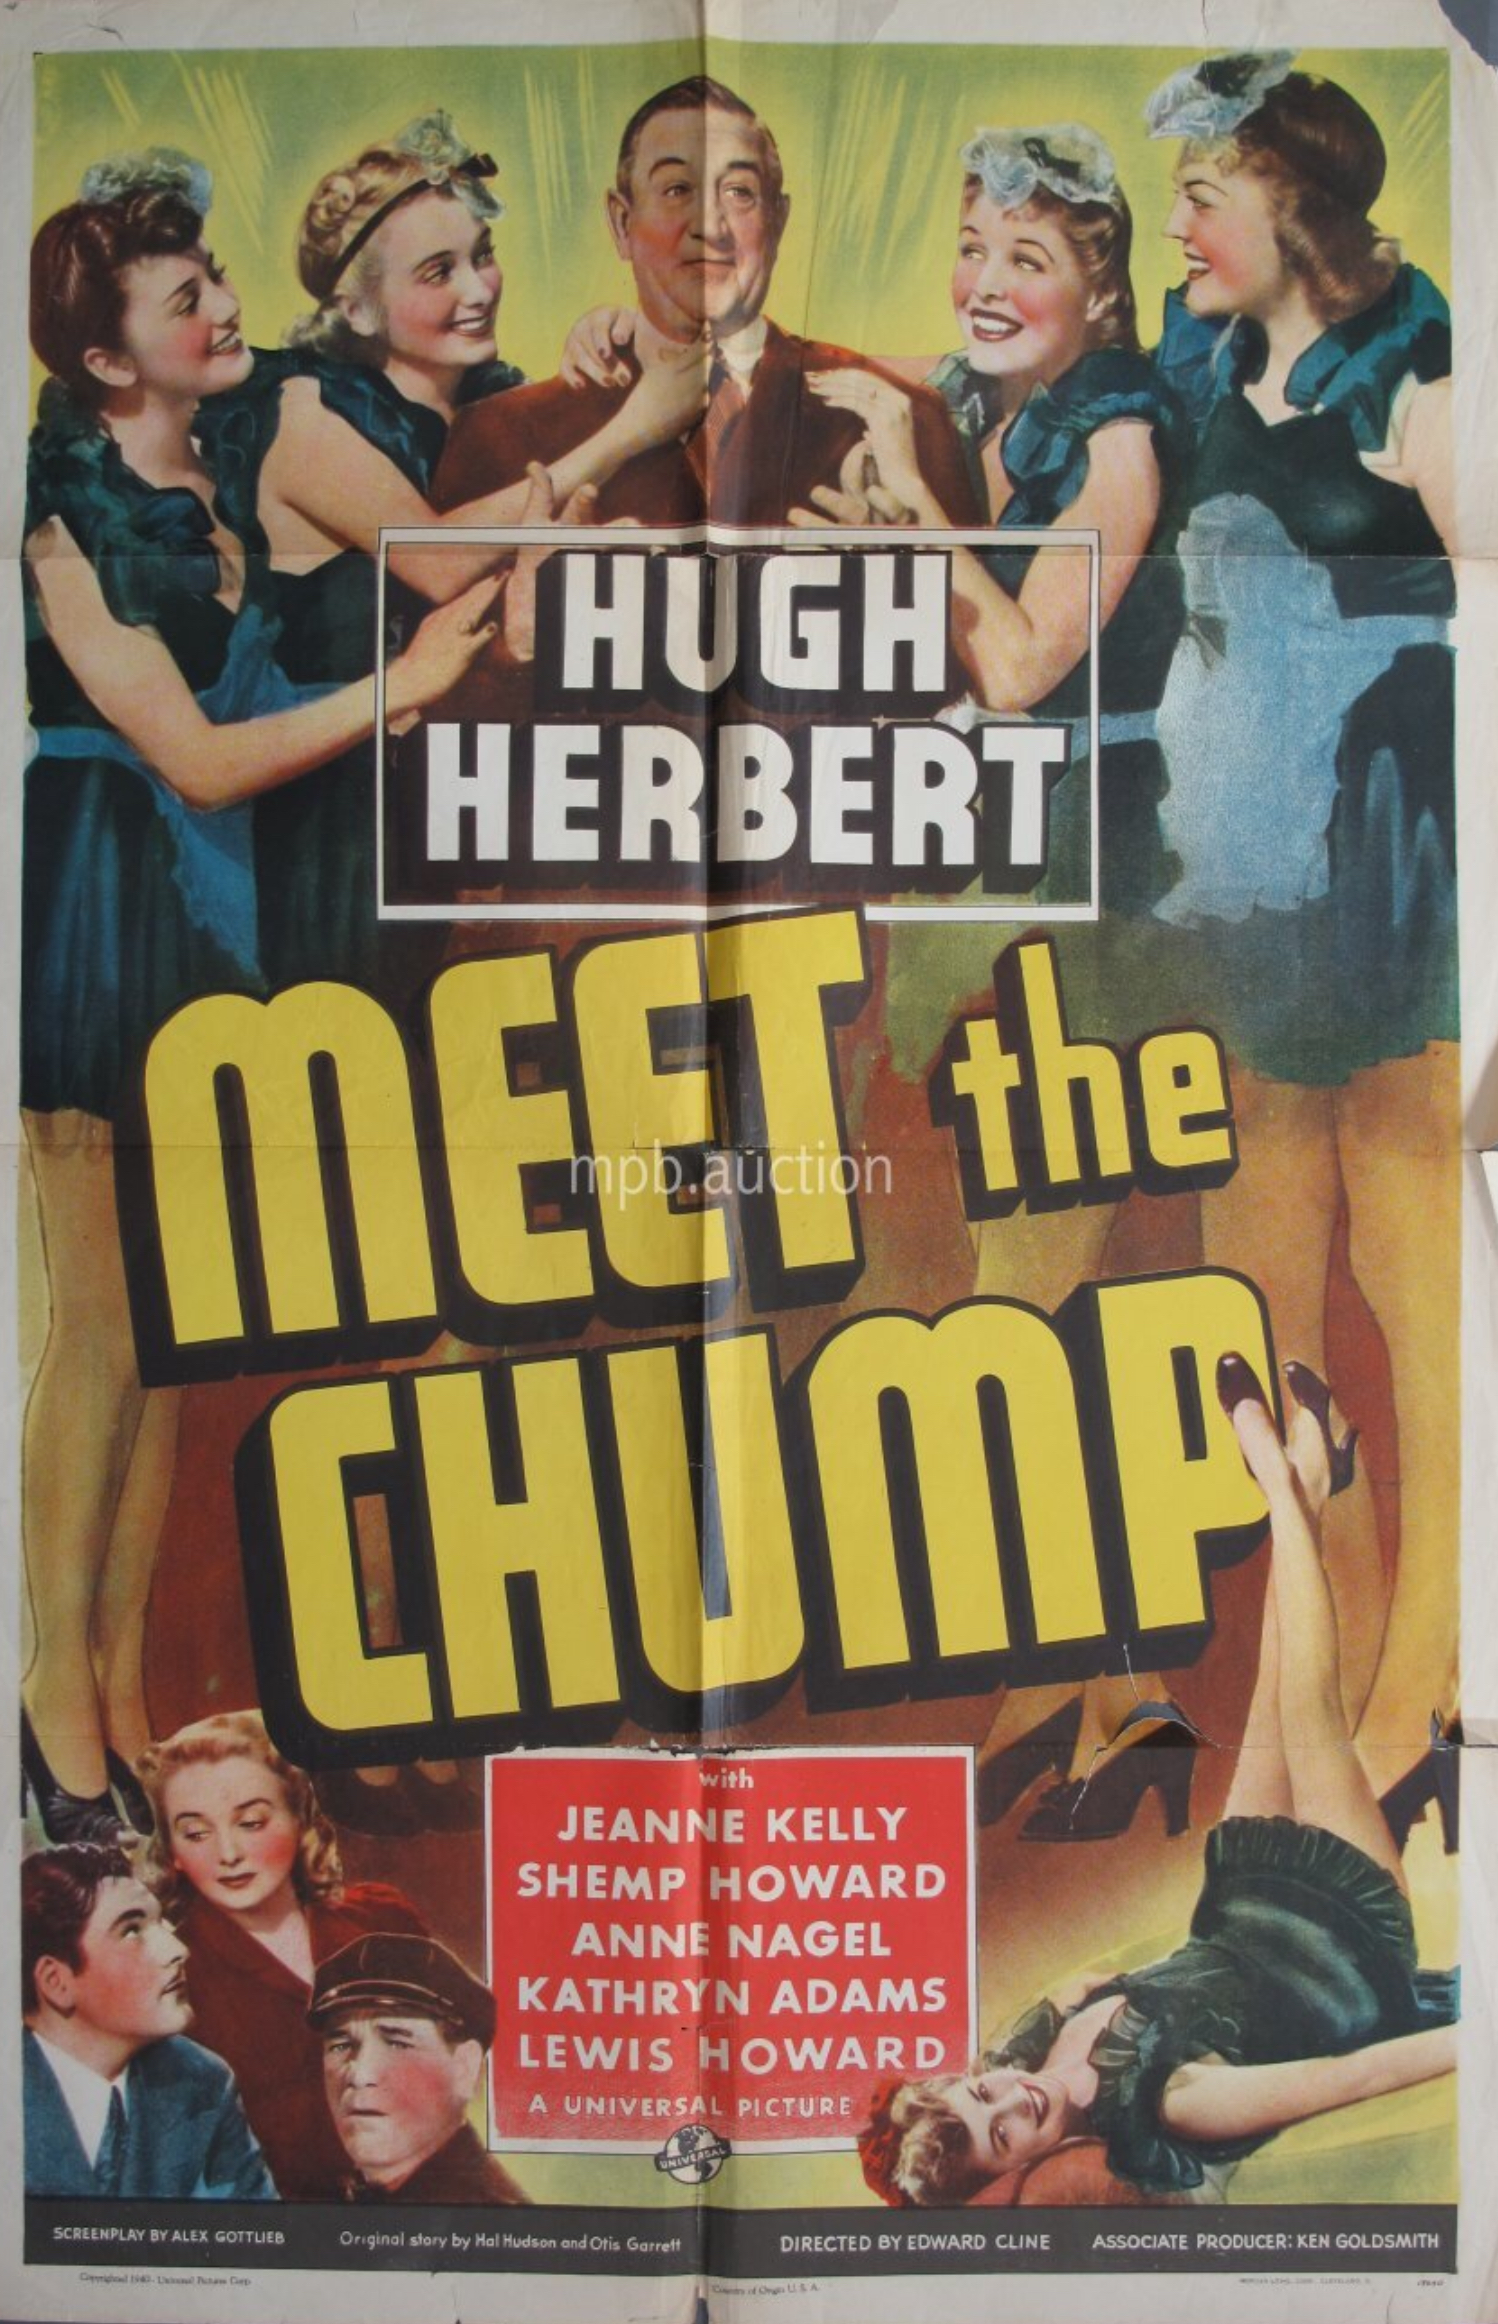 Meet the Chump (1941)